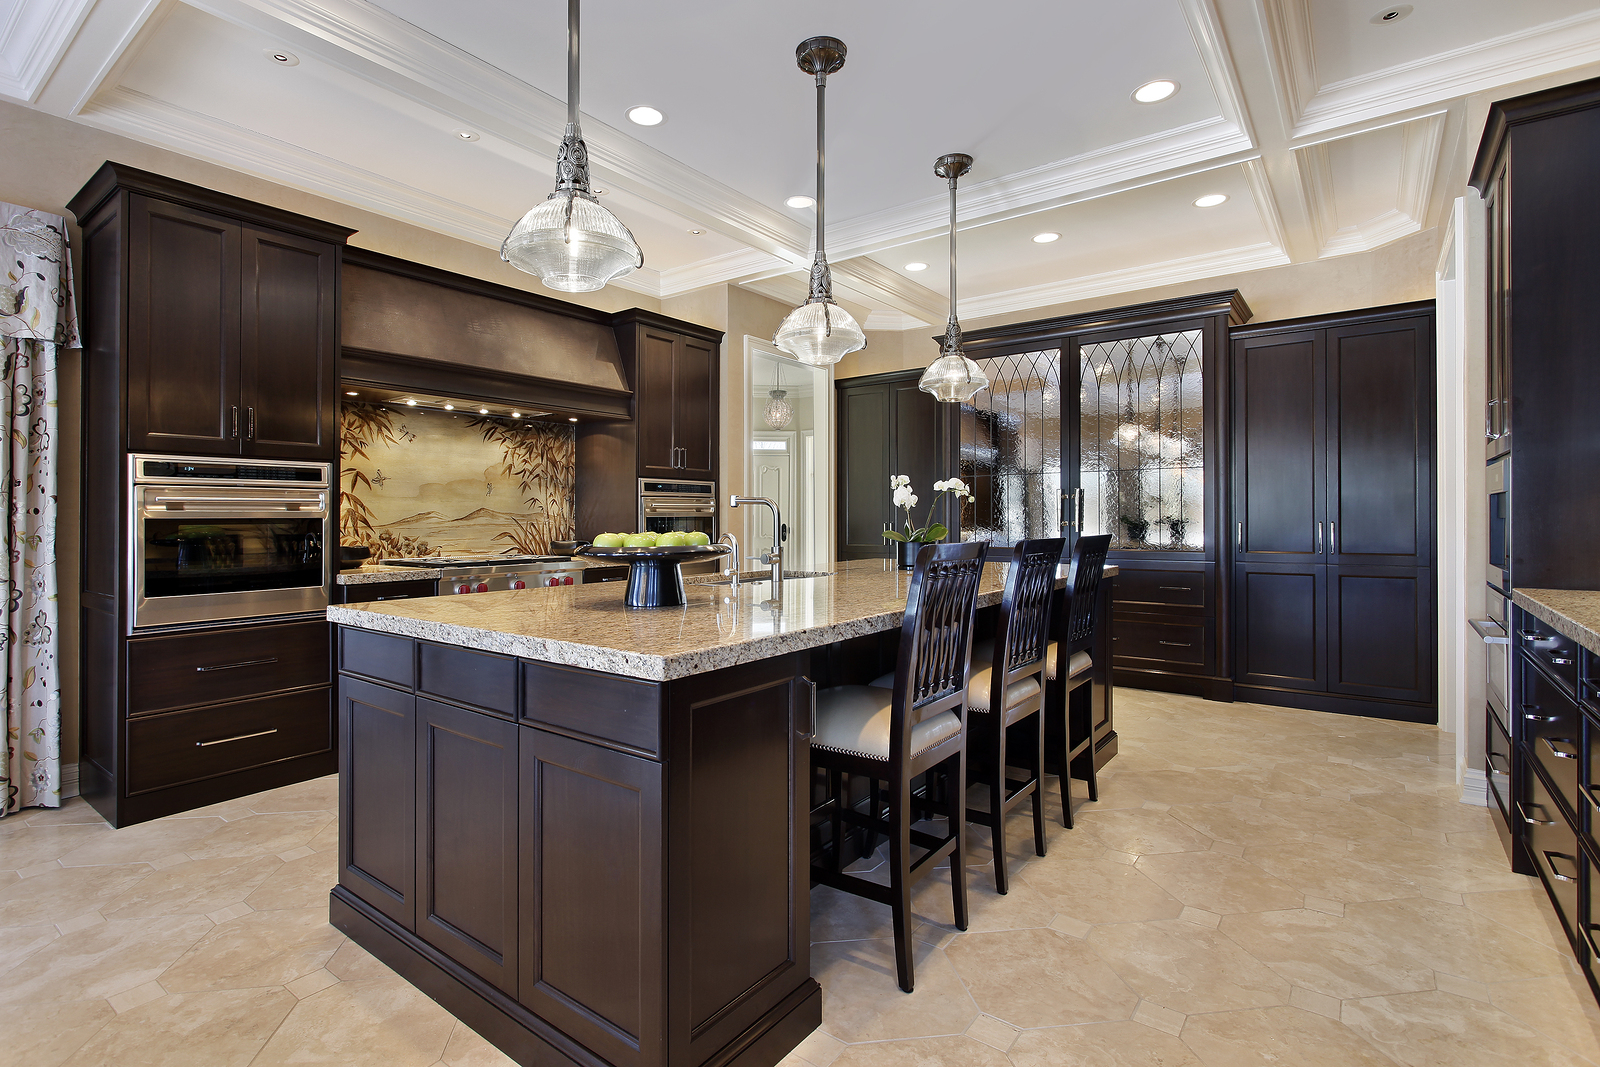 Fresh coat of paint light vs dark kitchens for Dark kitchen cabinets light island